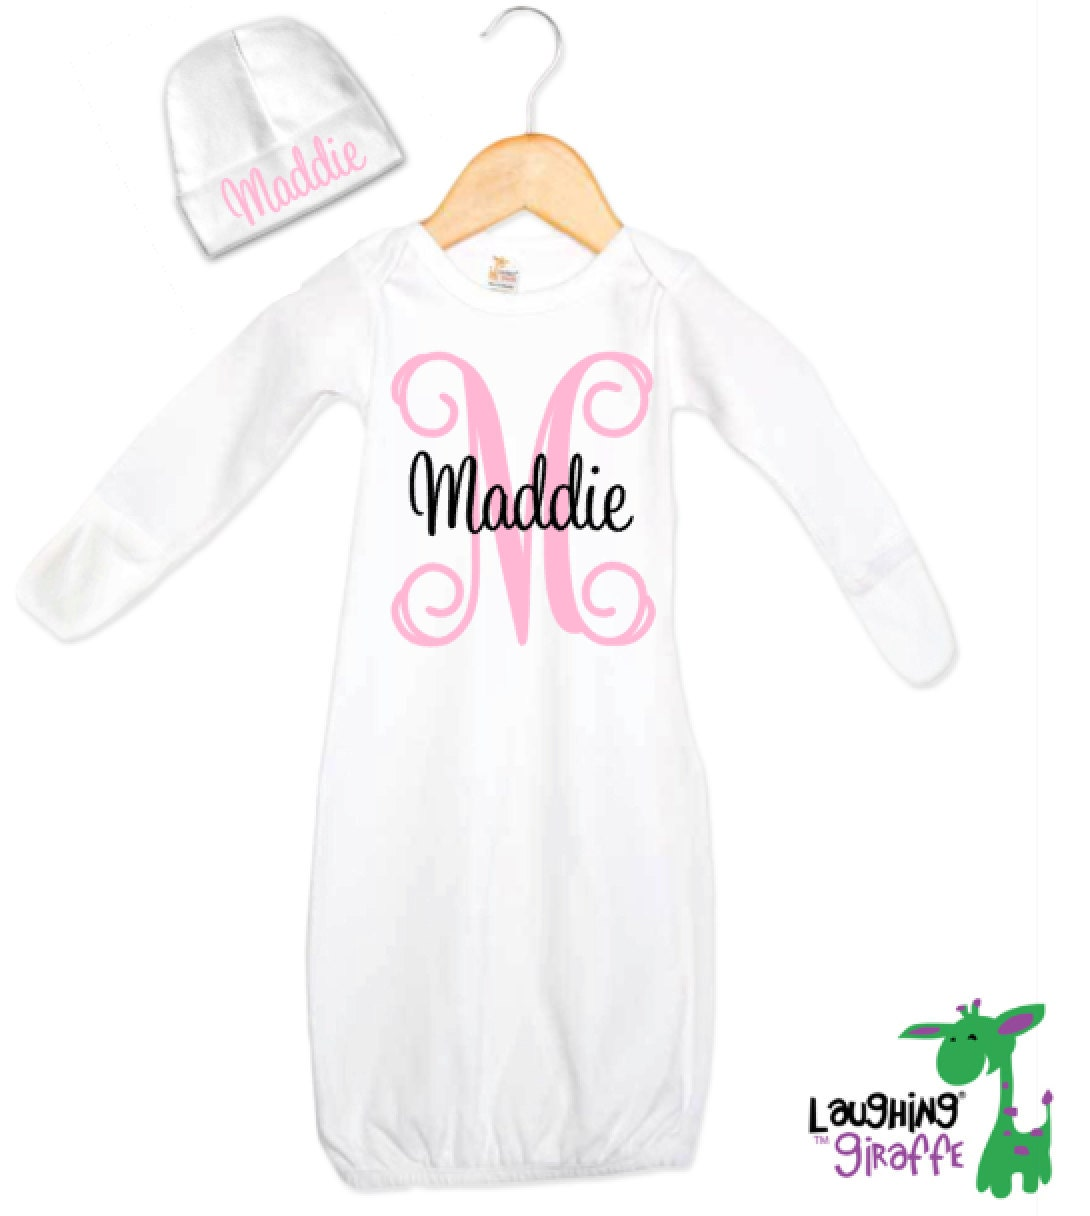 Personalized baby gifts gift set